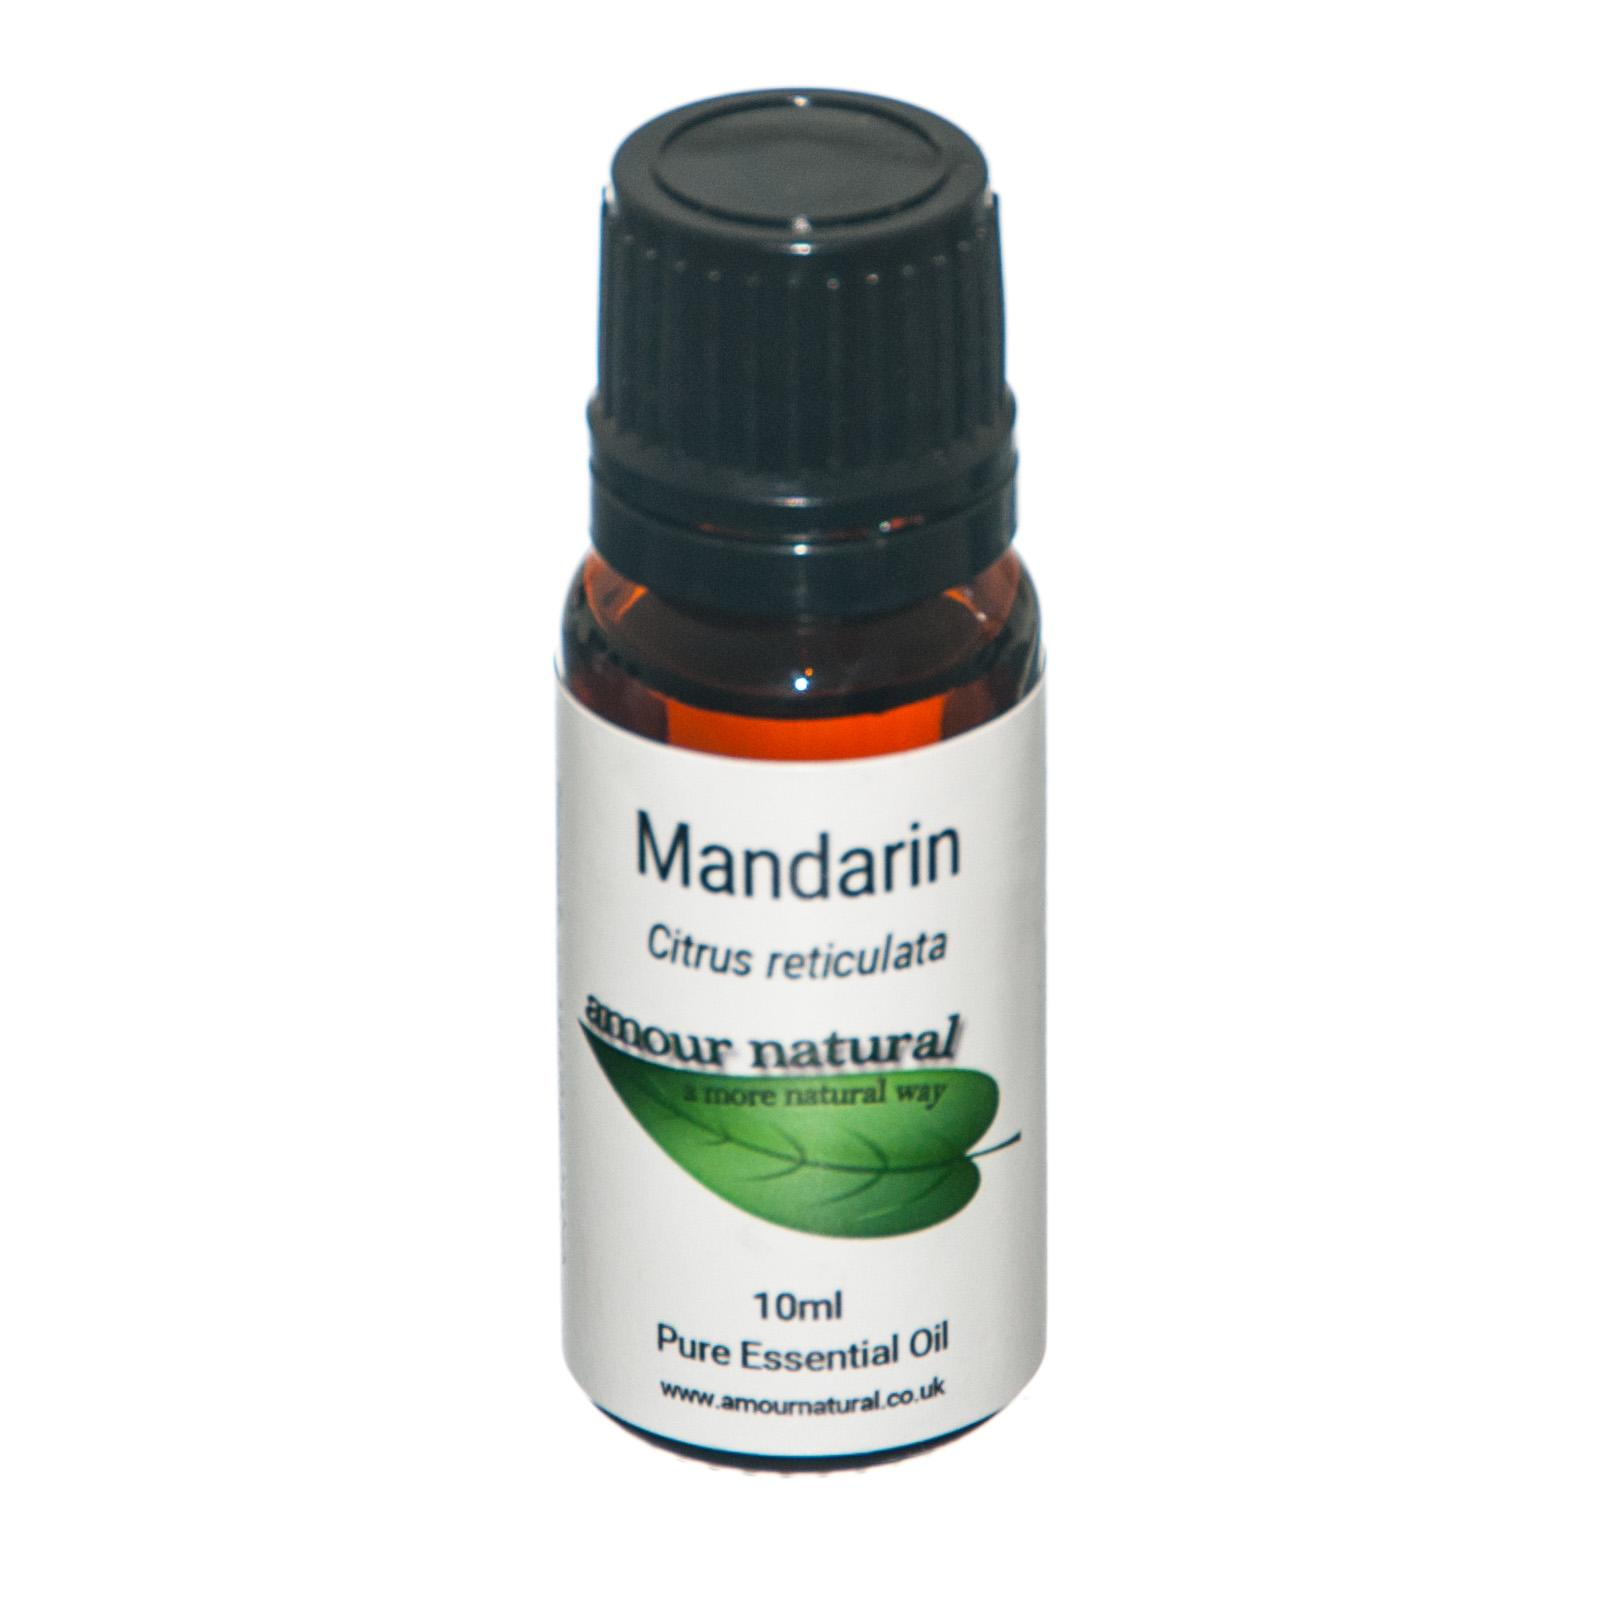 1 x 10 ml bottle of  Mandarin Essential Oil